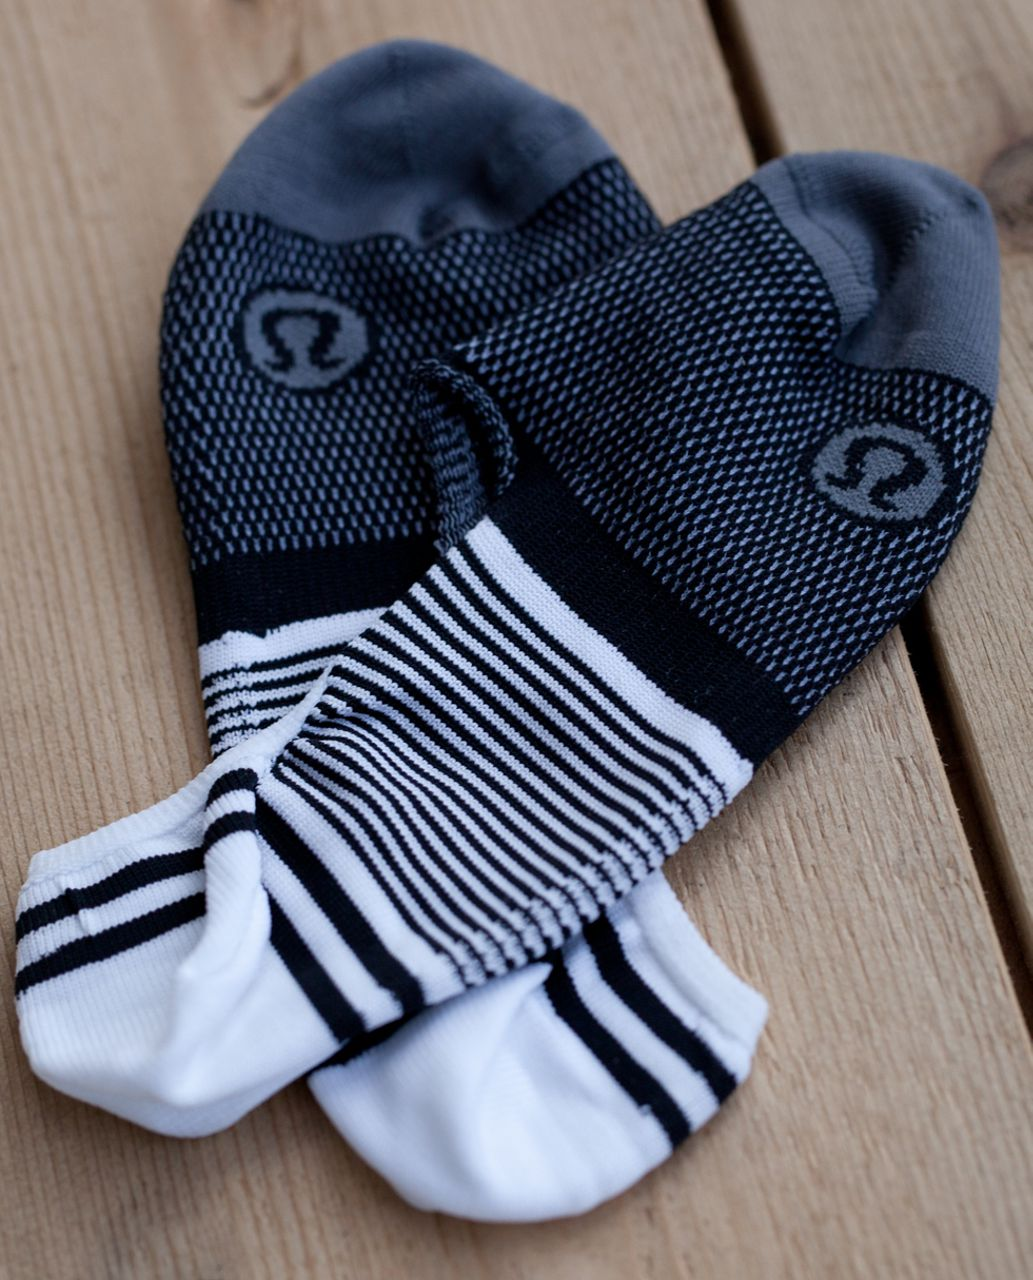 Lululemon Secret Sock - Candy Stripe Black White Slate